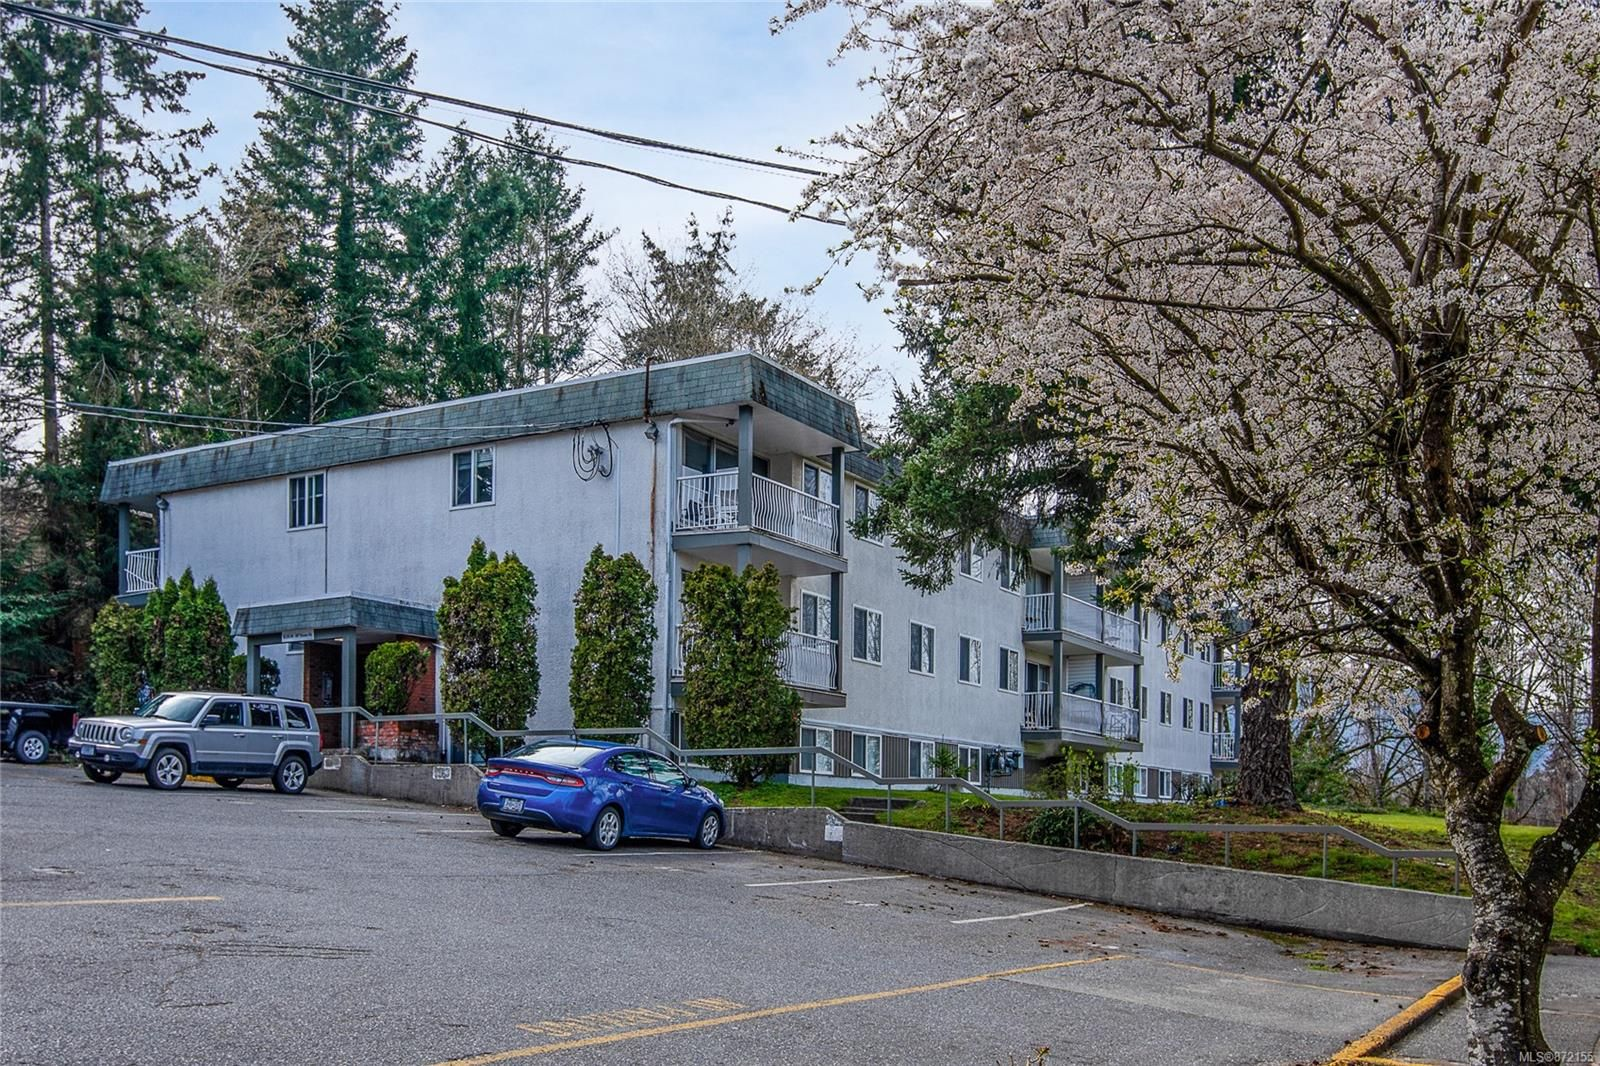 Main Photo: 4301 997 Bowen Rd in : Na Central Nanaimo Condo for sale (Nanaimo)  : MLS®# 872155